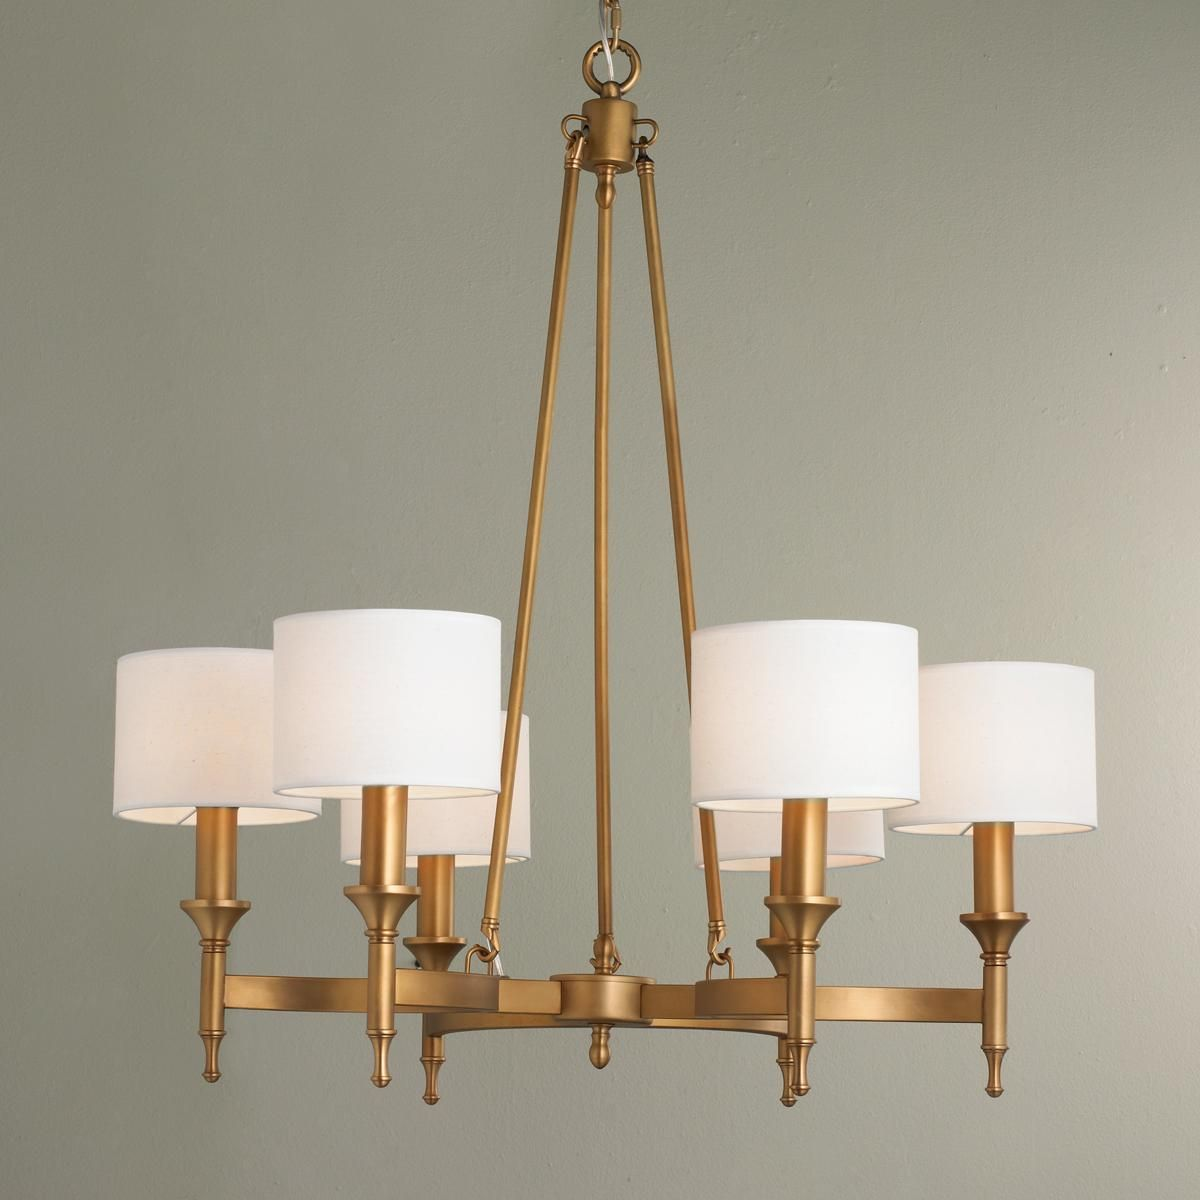 info for df680 beecb Metrolume Chandelier | Lighting | Dining room light fixtures ...